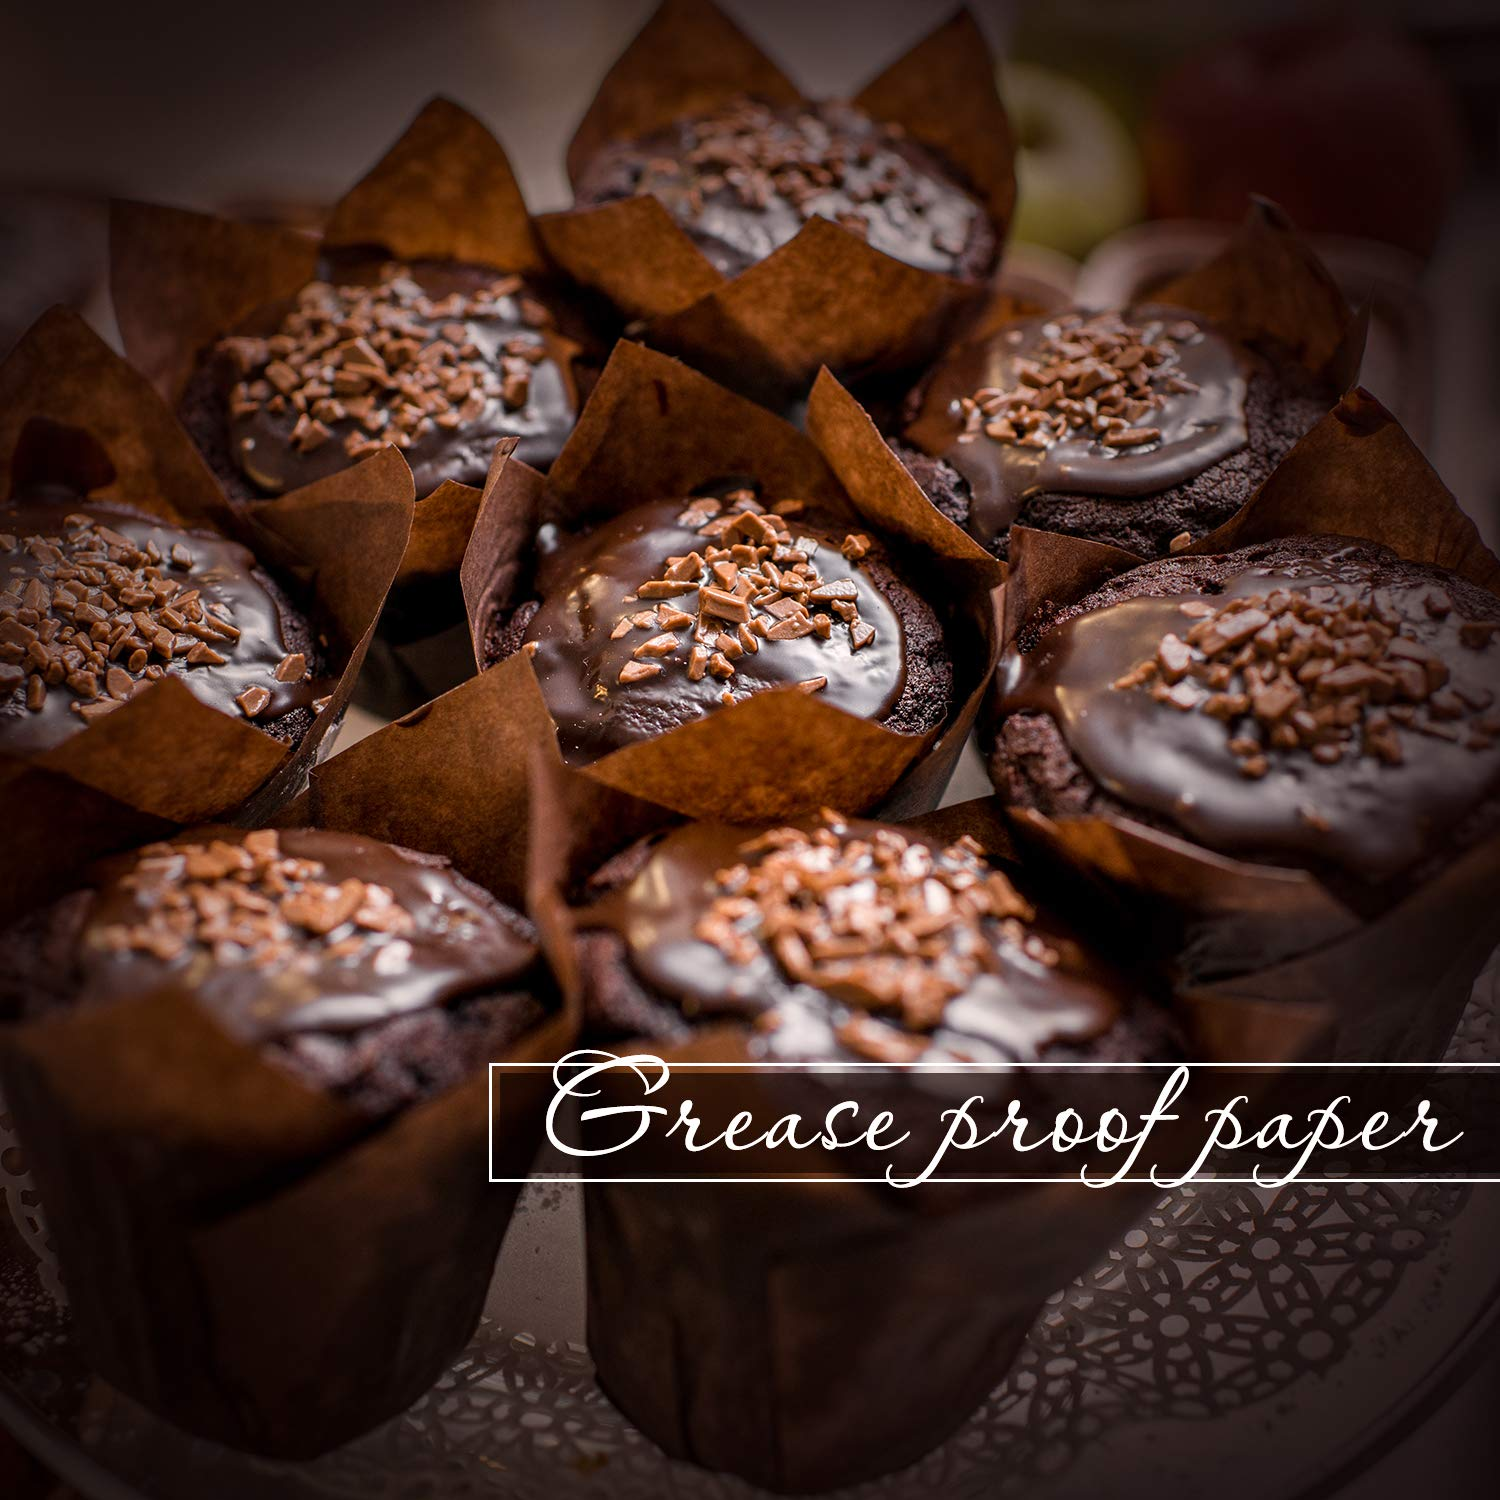 Medium Sleeve of 50 Royal Brown Tulip Style Baking Cups Cupcake liner,Cupcake wrappers,Parchment paper cupcake liners